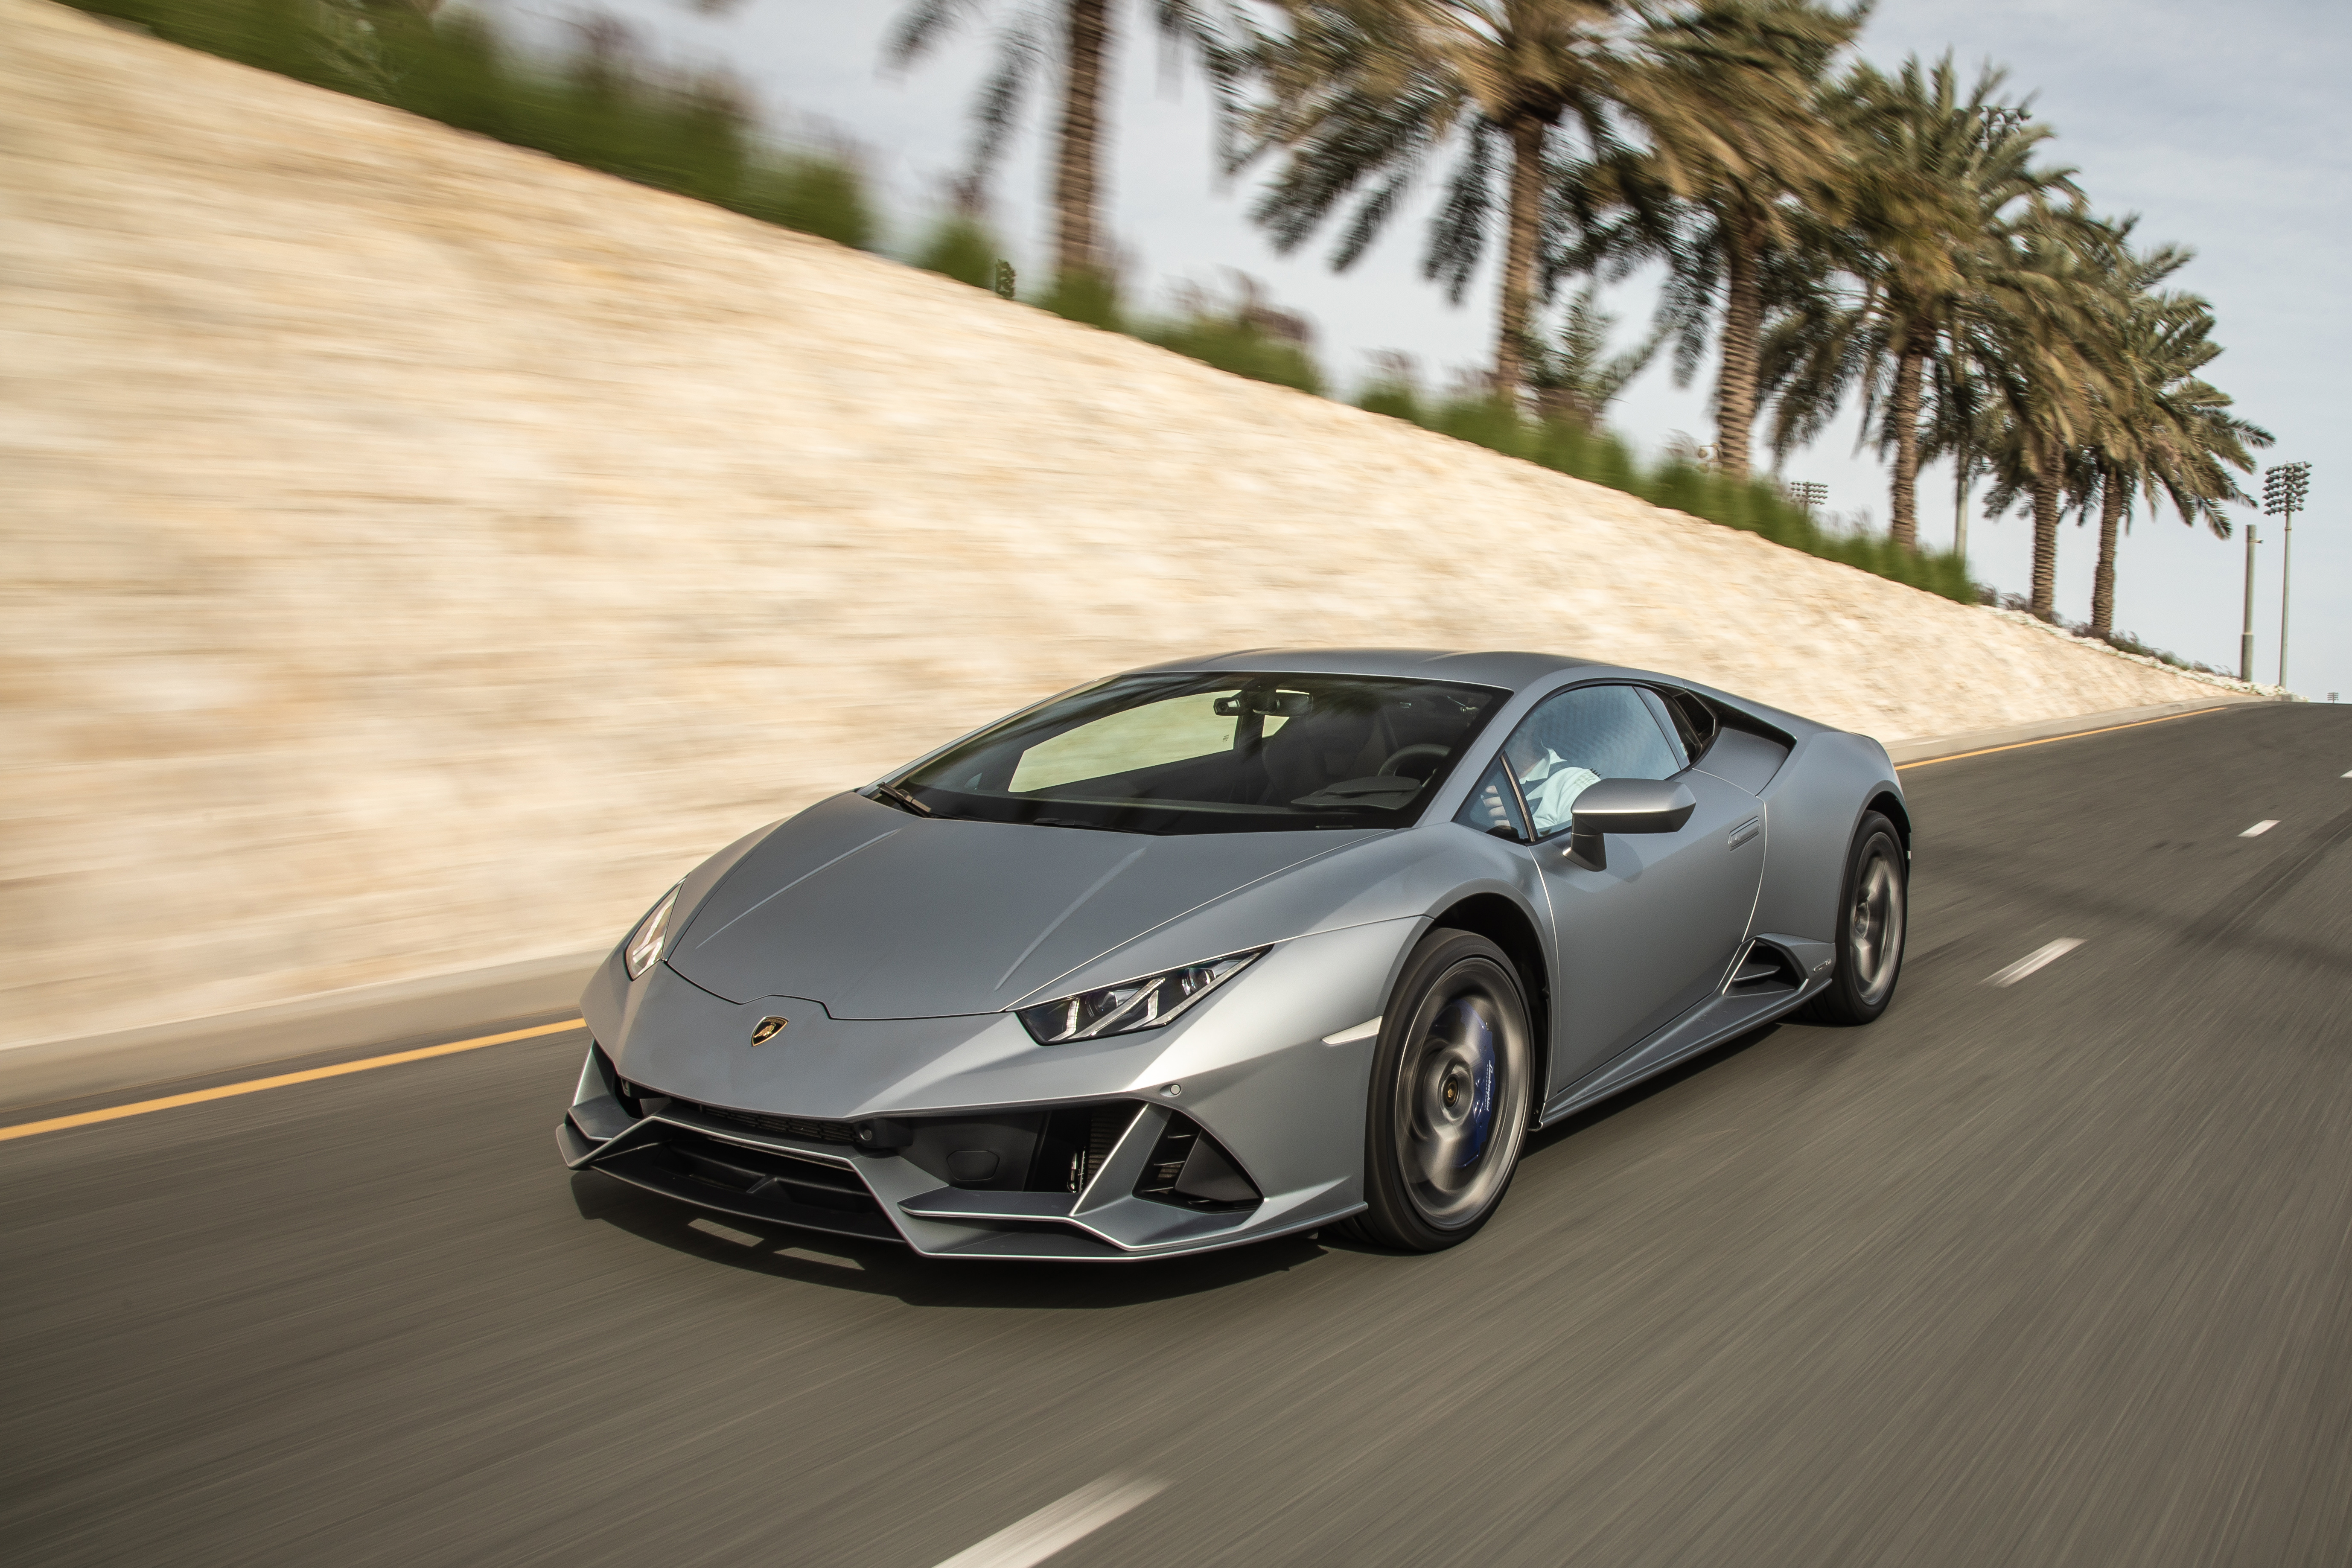 How Much Is It To Rent A Lamborghini >> How Much Does It Cost To Rent A Lamborghini